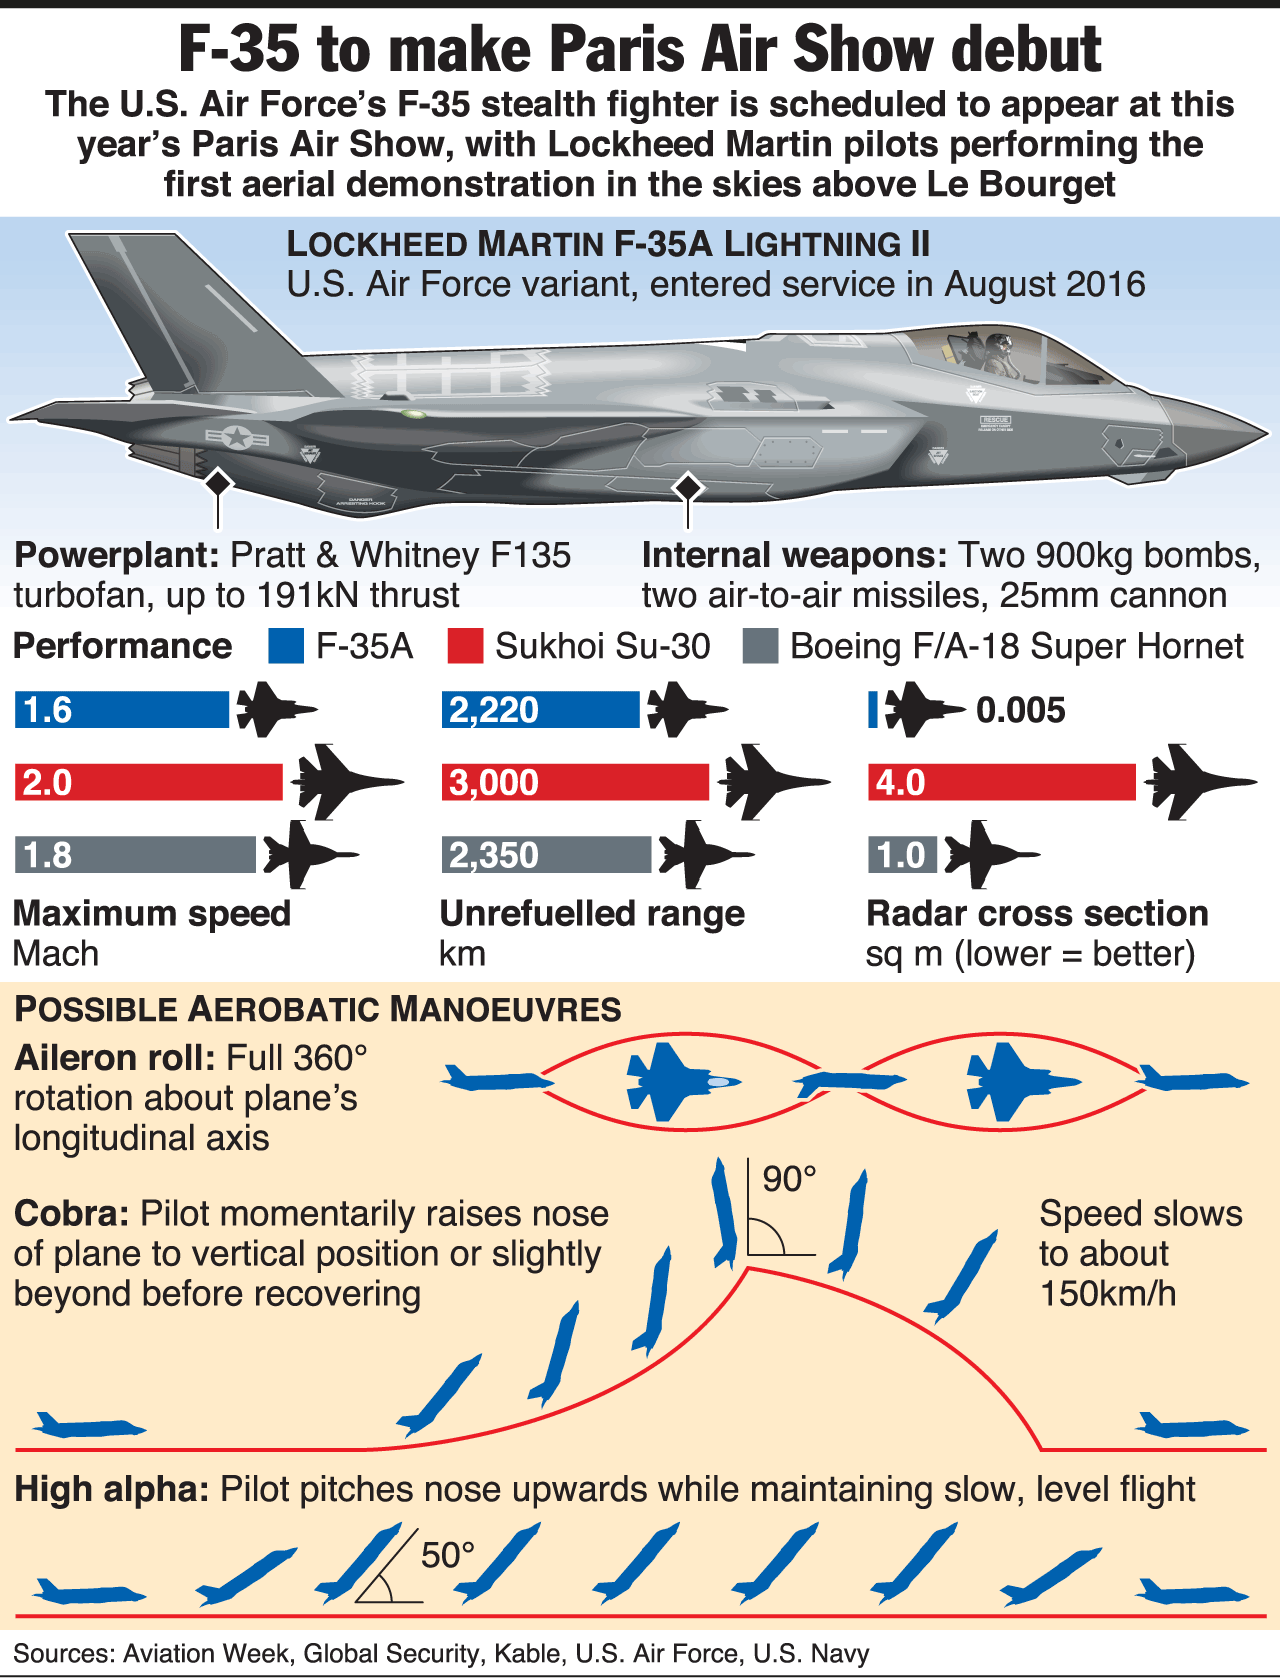 small resolution of aviation f 35 paris air show debut infographic